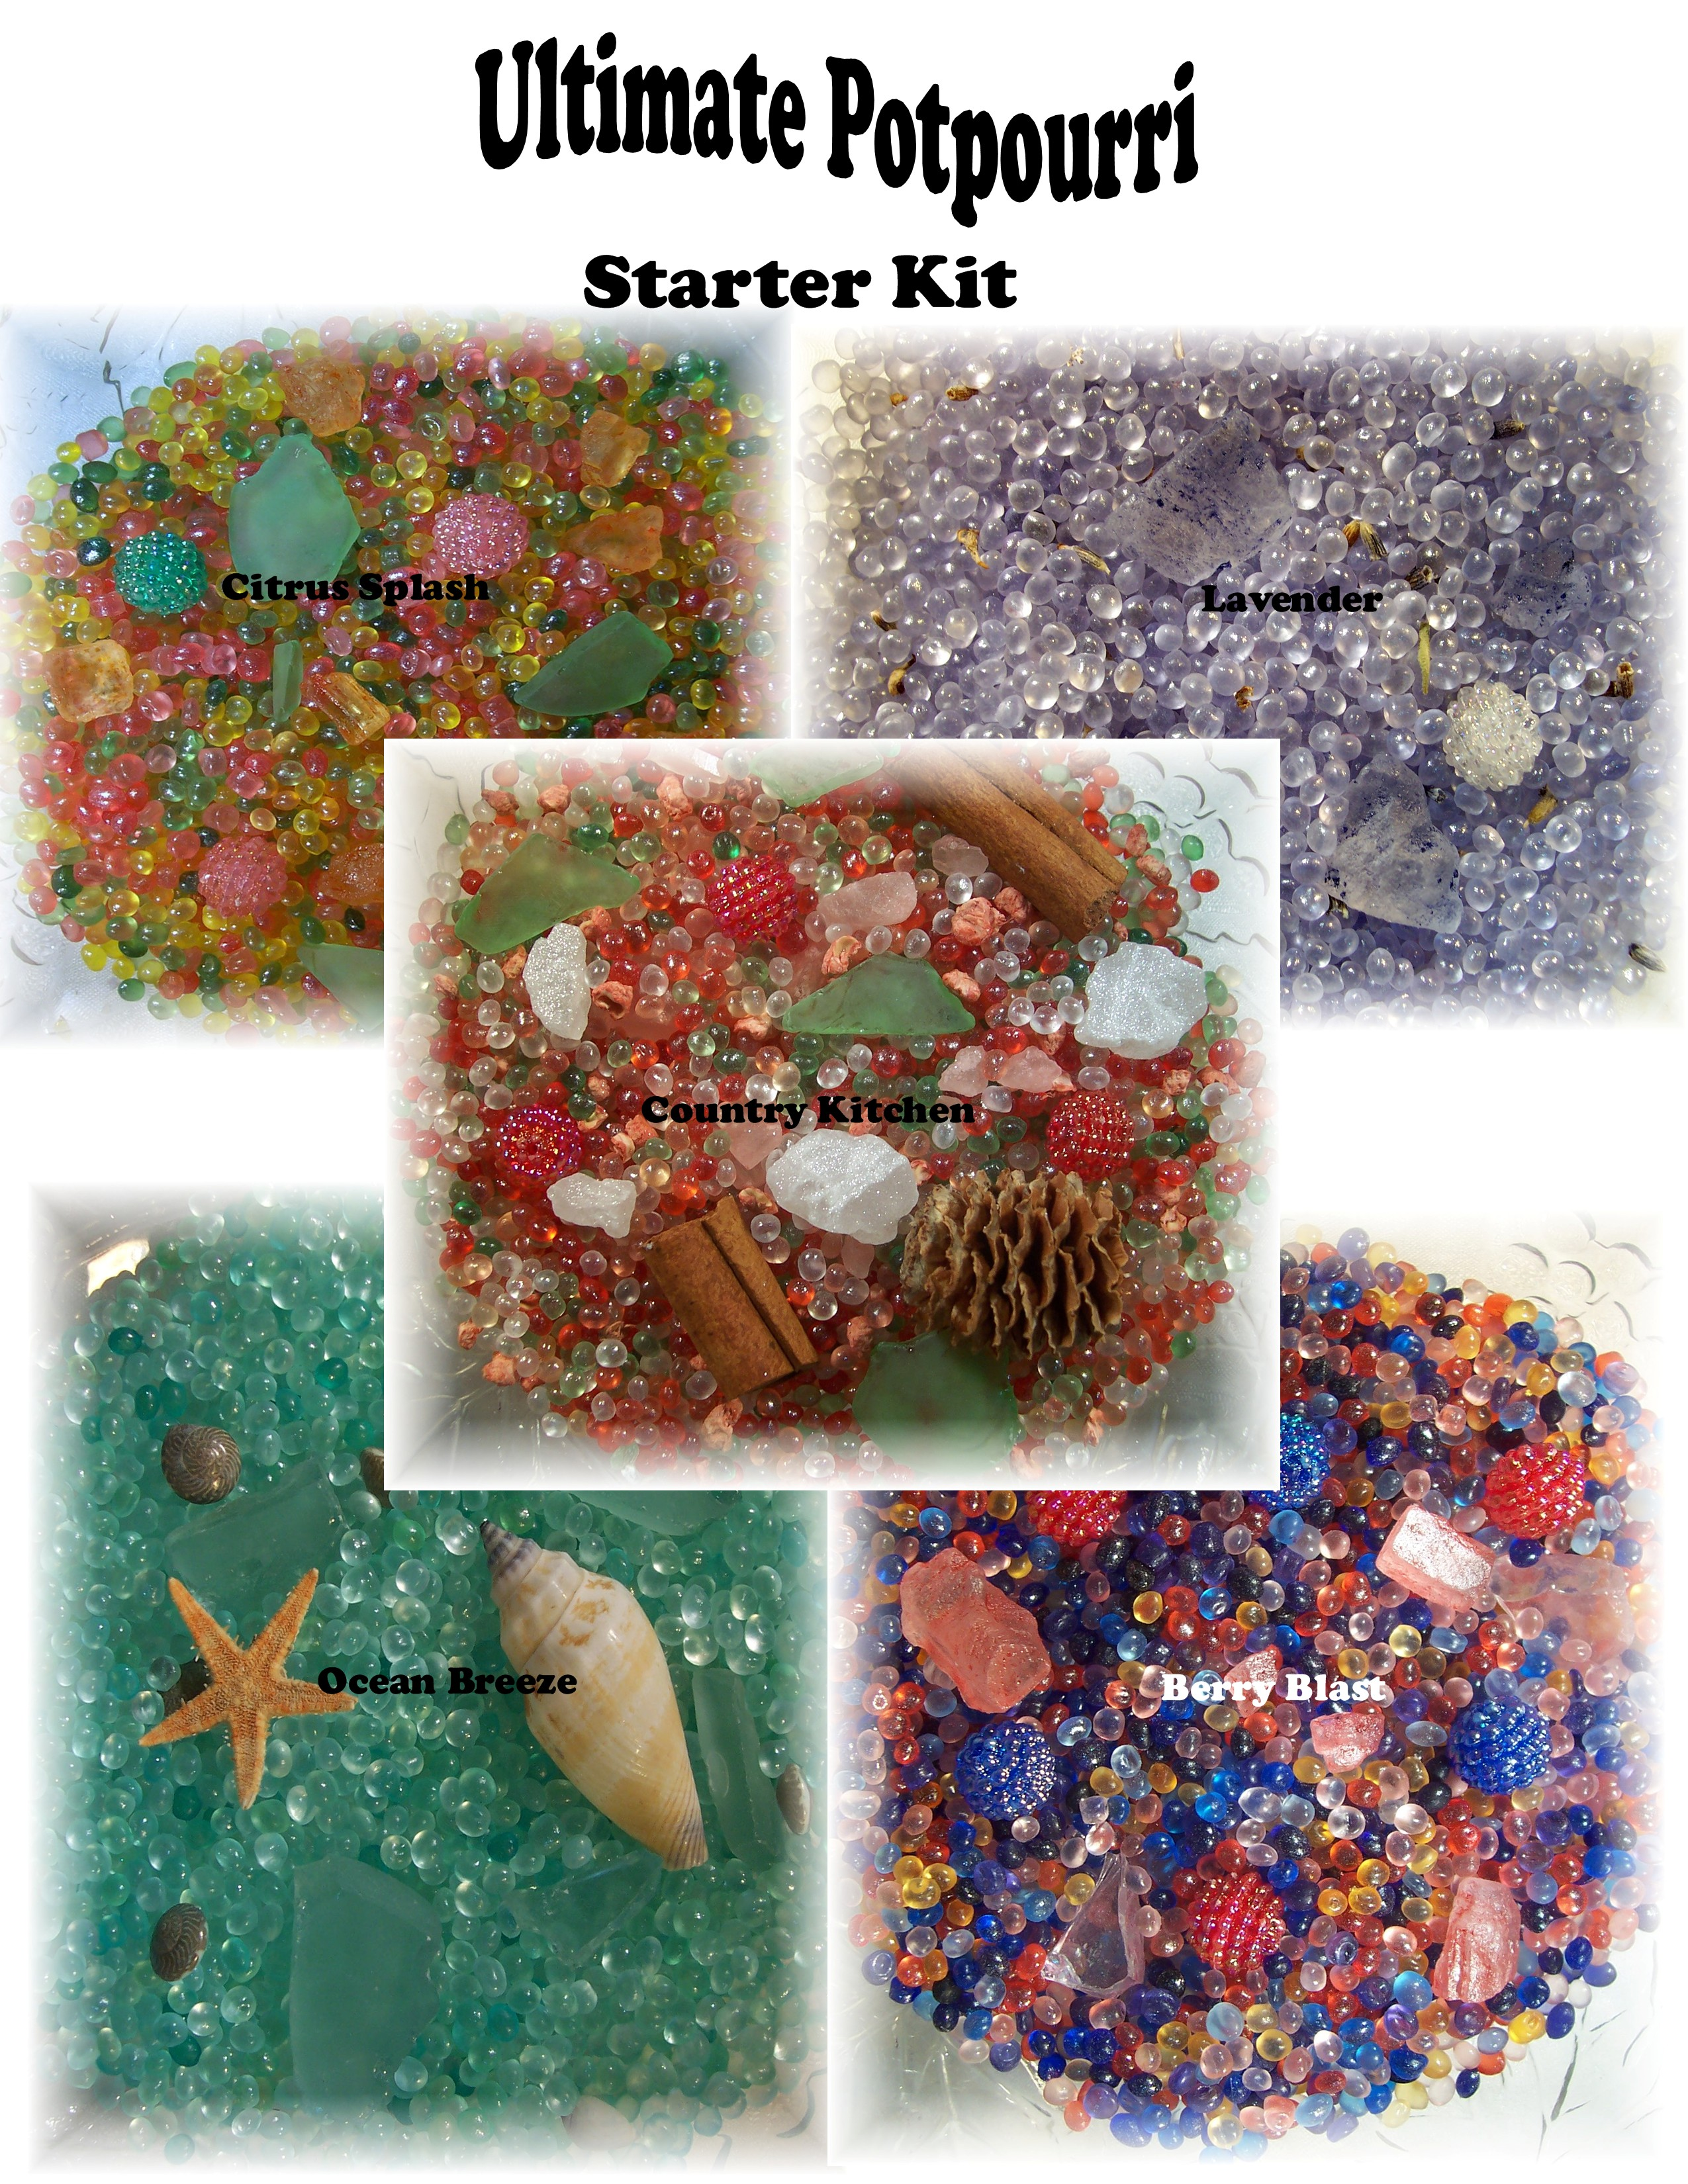 Ultimate Potpourri Starter Kit - 5 lbs. ea. of 5 fragrances